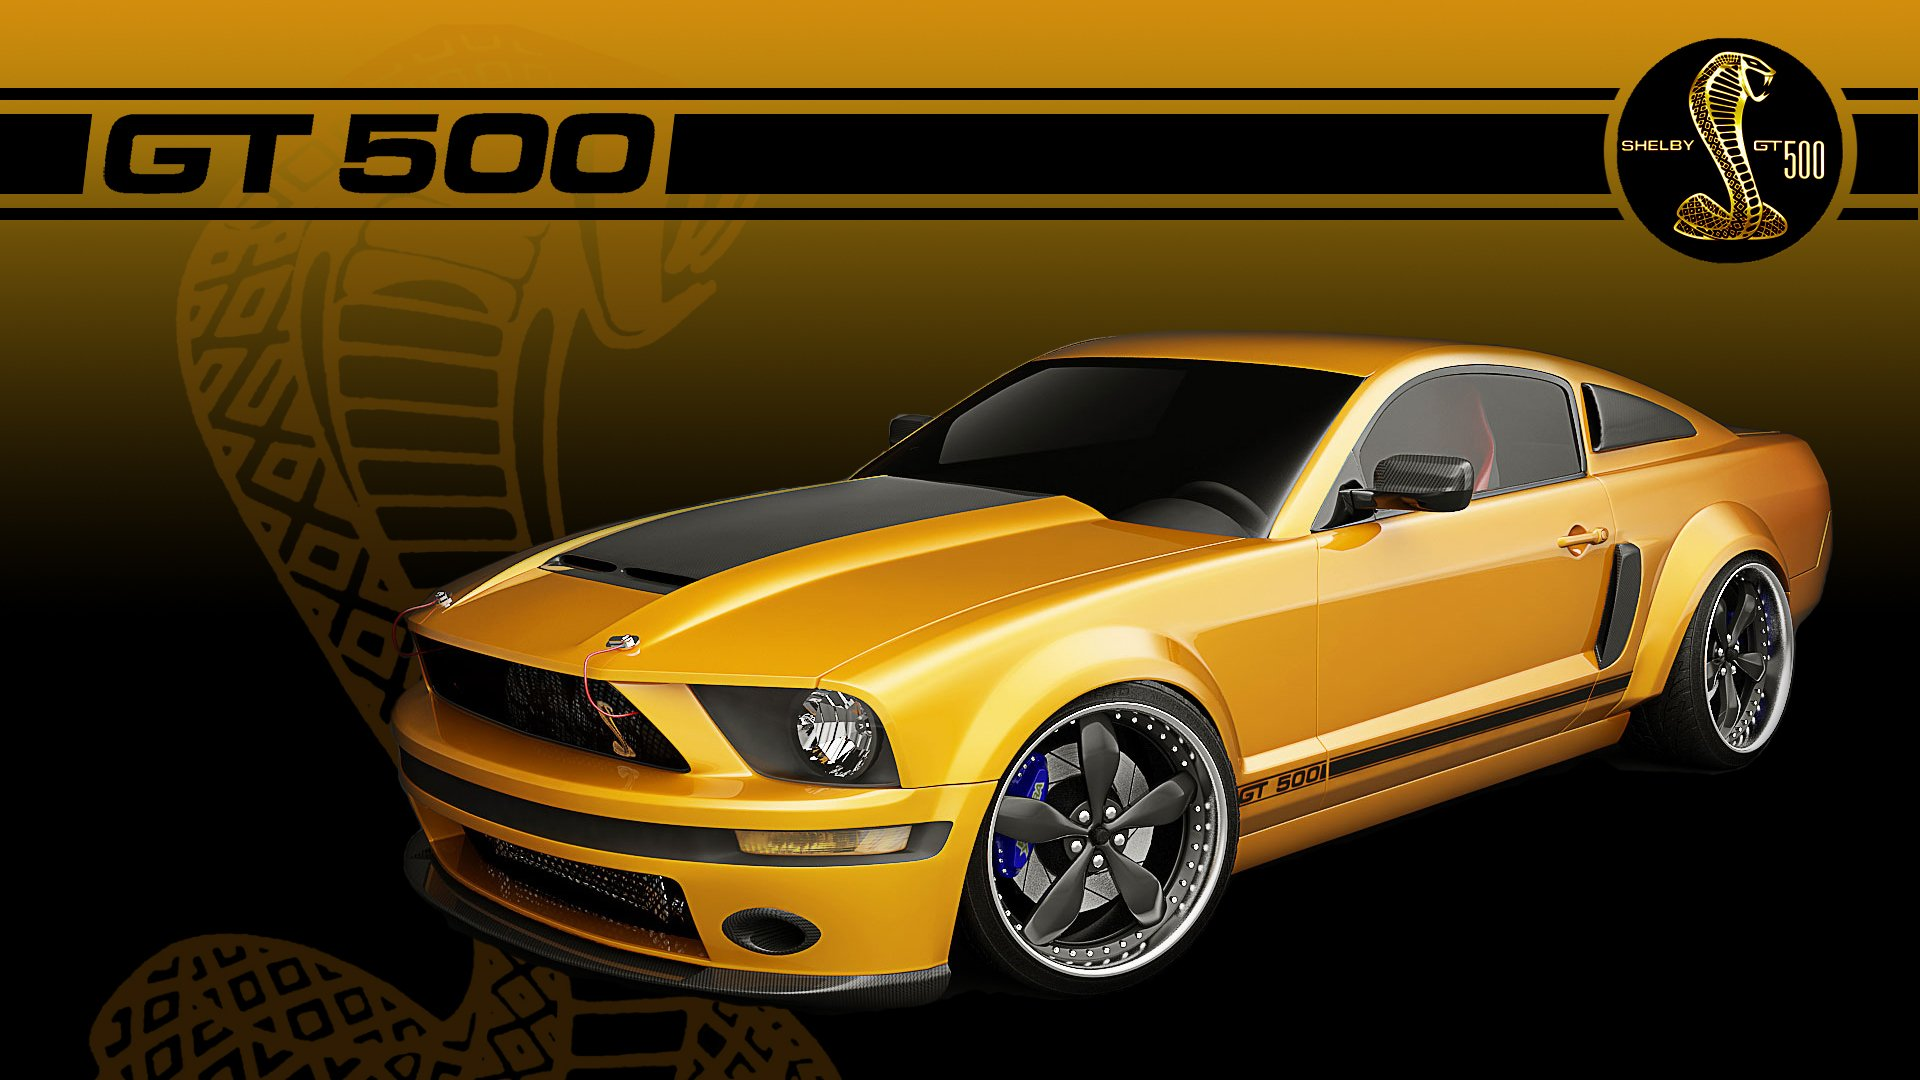 ShelbyGT500 Full HD Wallpaper and Hintergrund  1920x1080  ID:270203